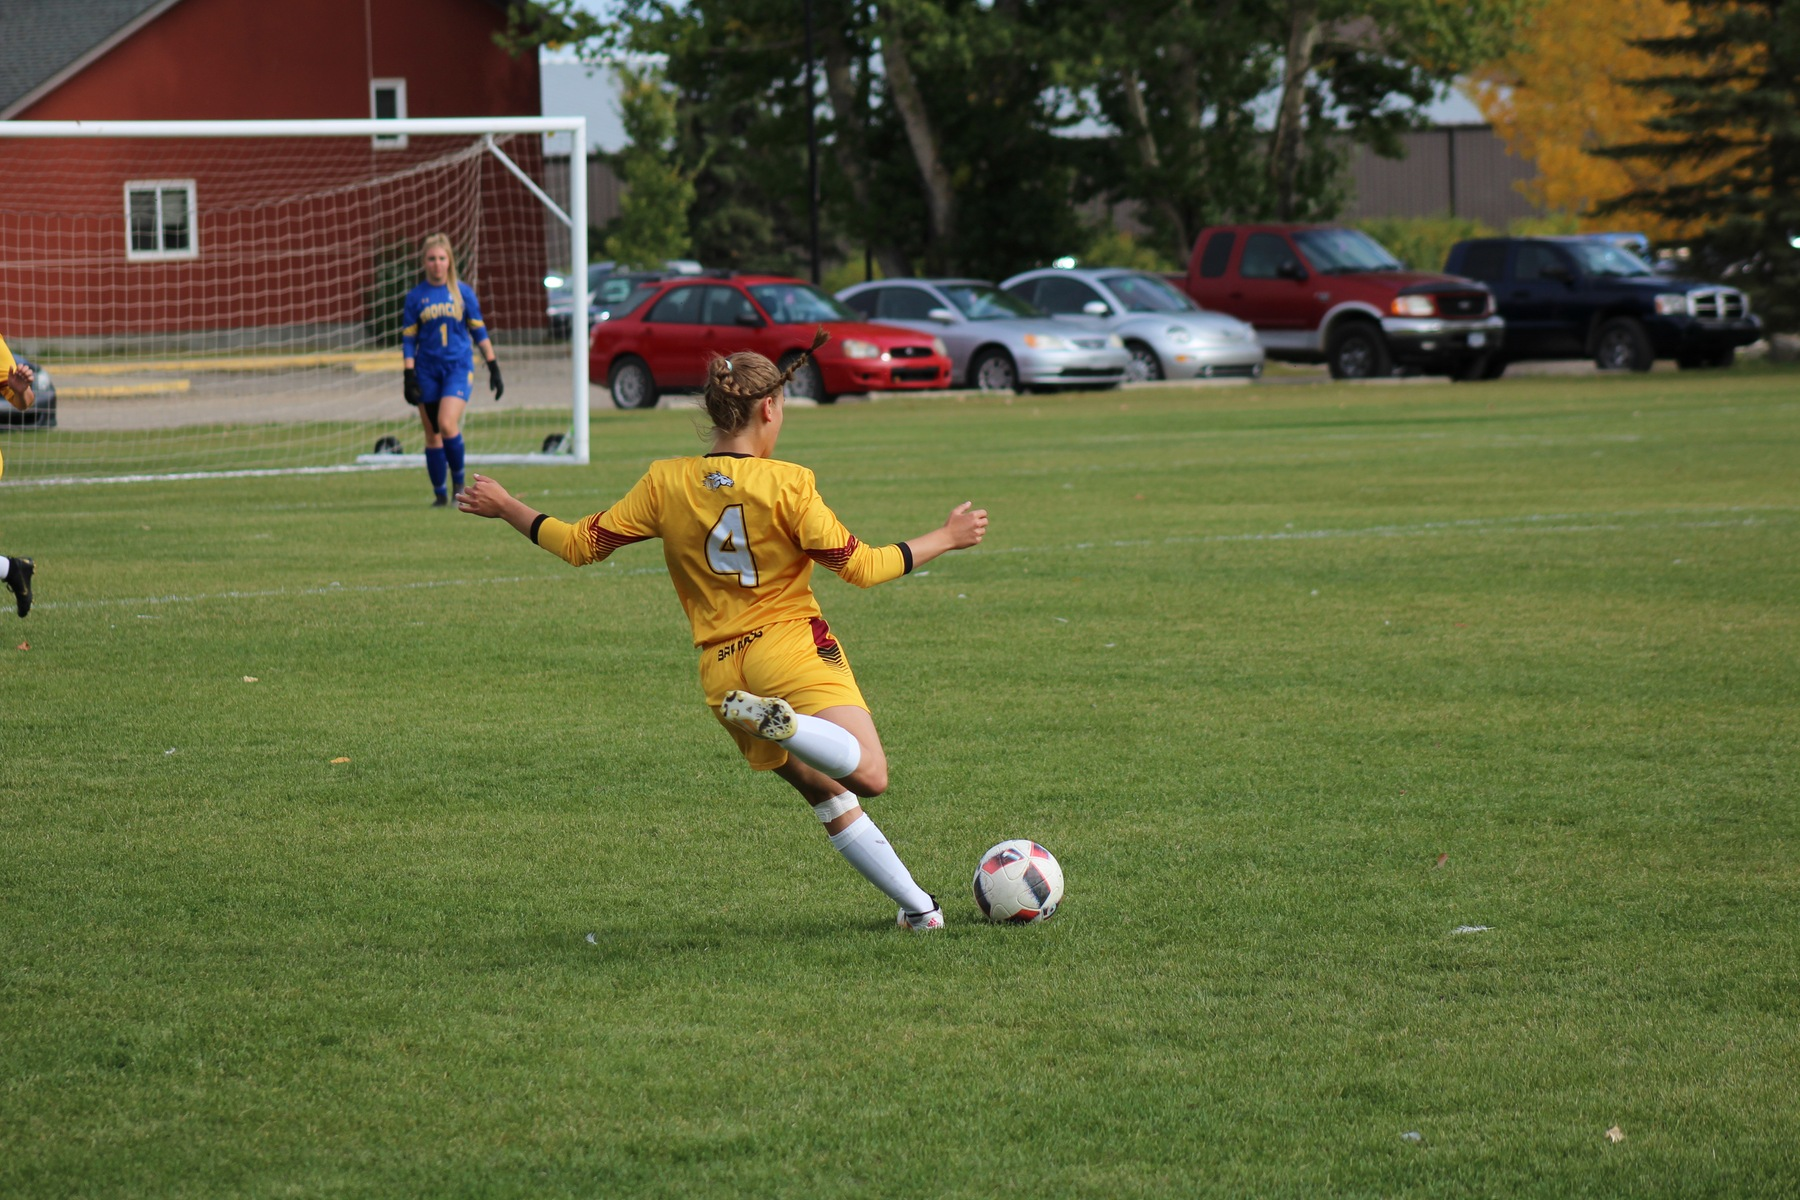 Hallock keeps game close as Broncos win streak ends